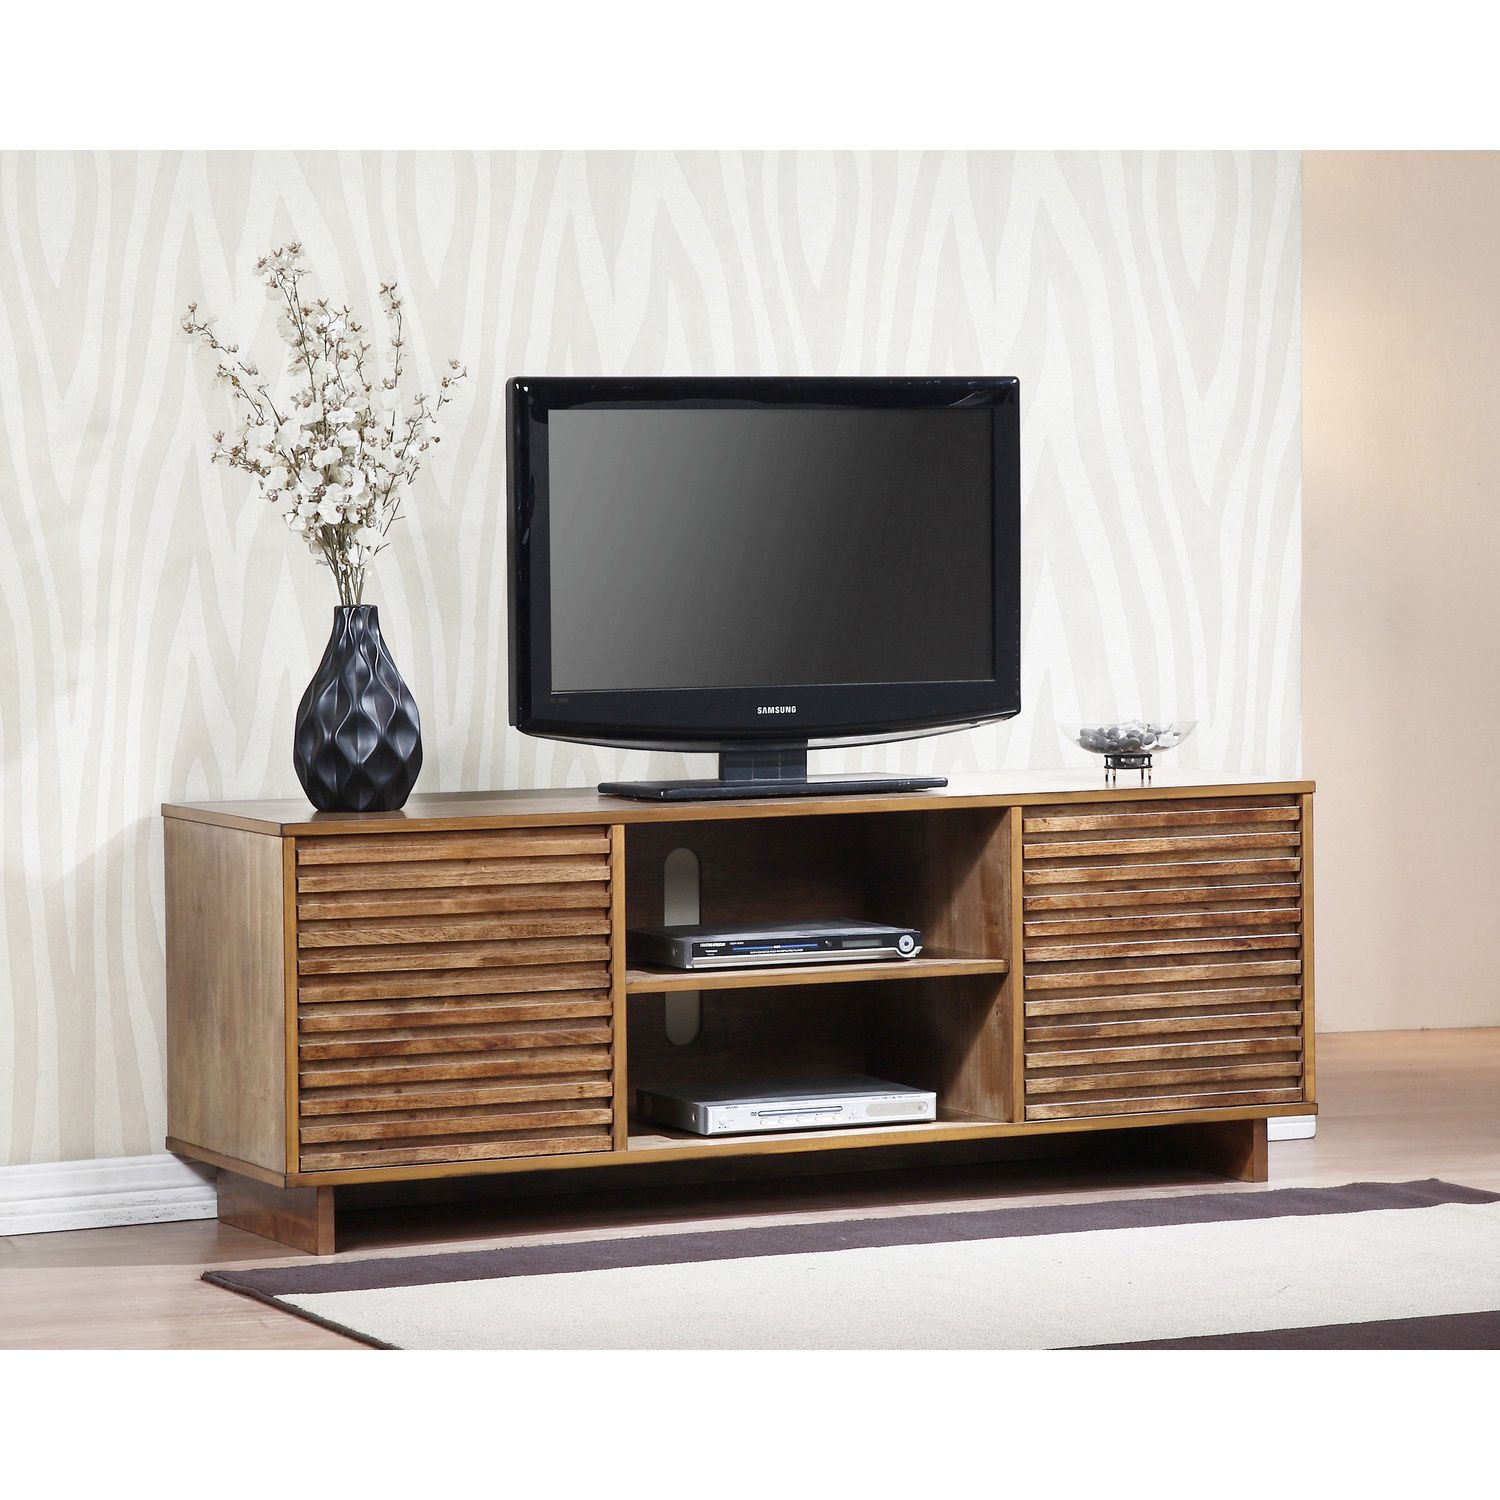 Bring a mid century modern touch to your home decor with this beautiful array home entertainment center finished in oak this unit offers generous storage